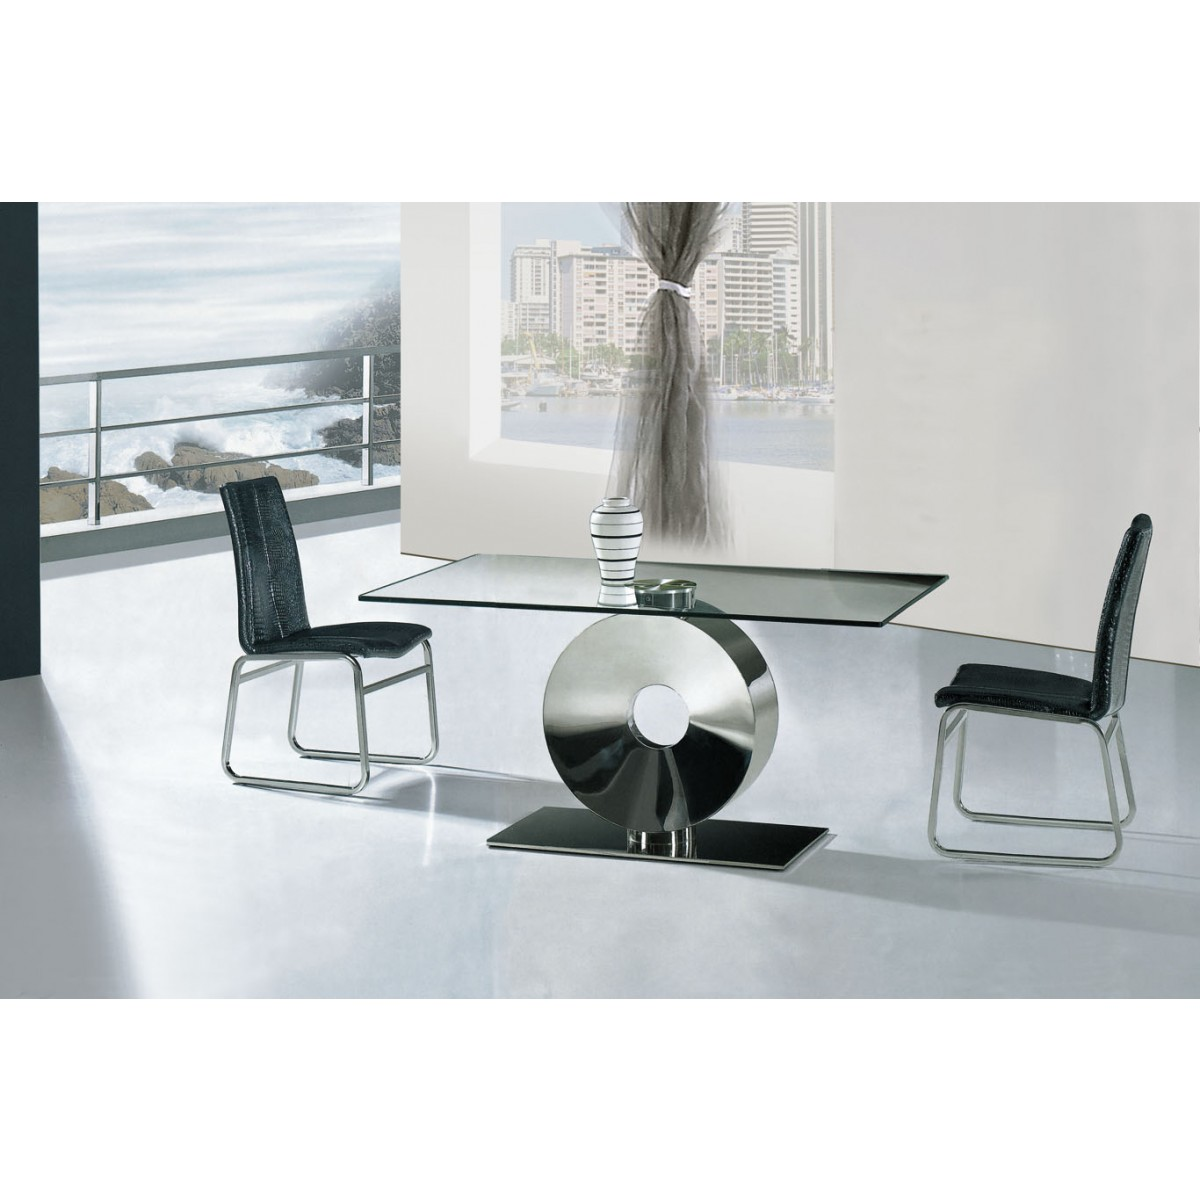 Table de salle manger design ring 160cm for Table de salle a manger etroite